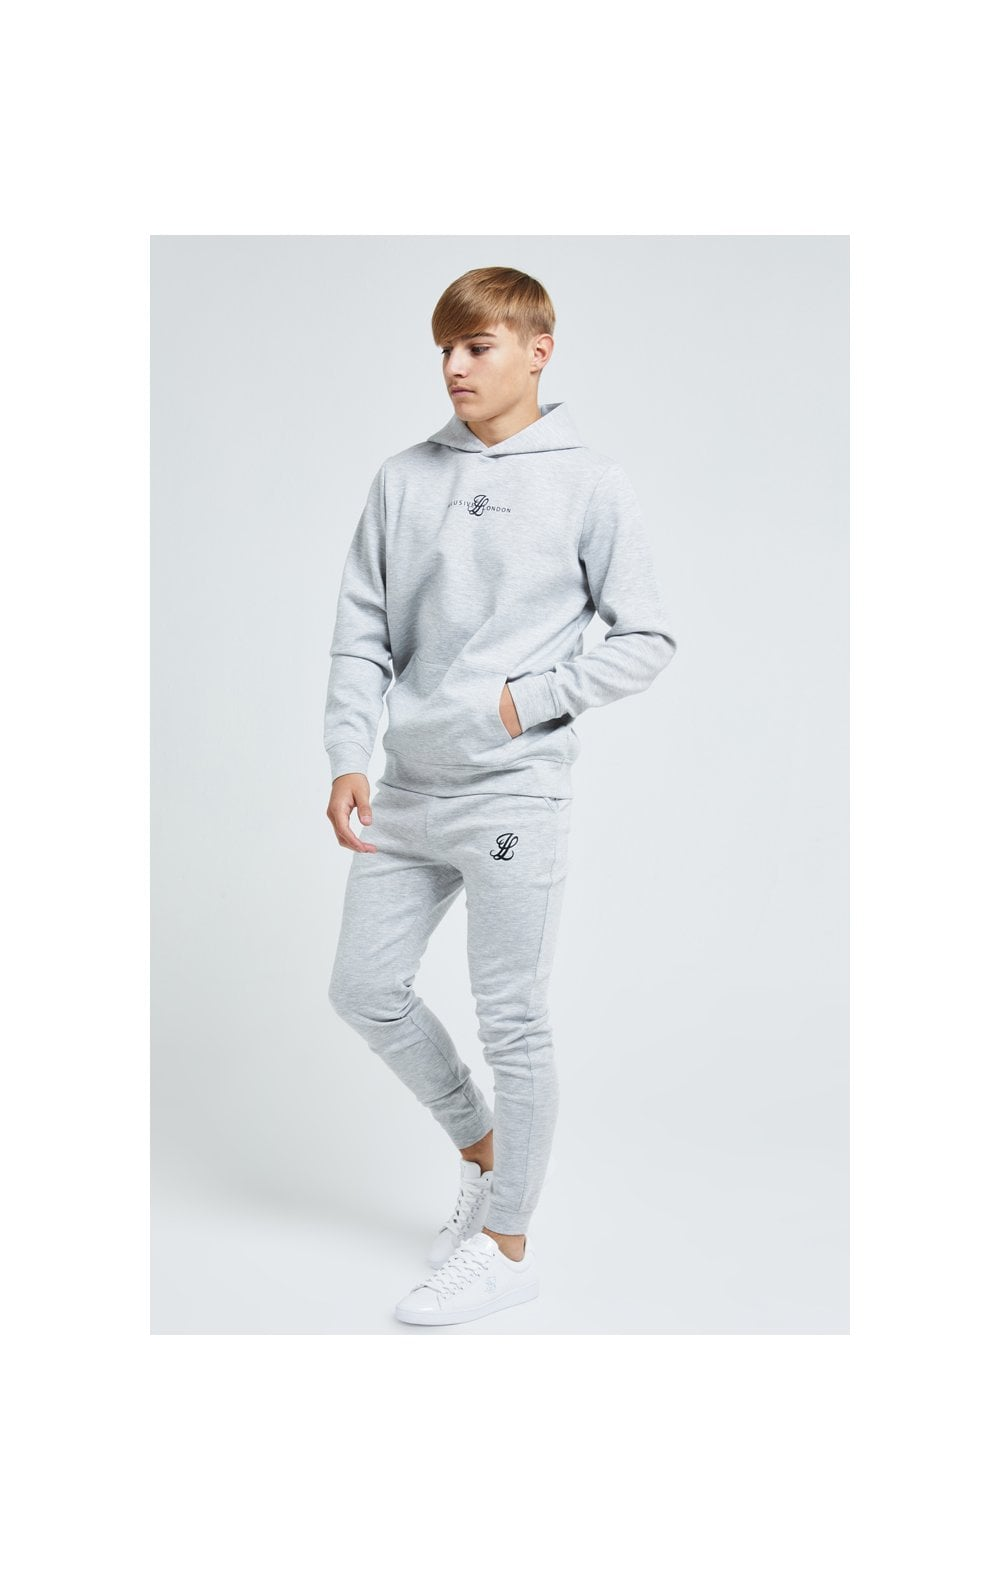 Illusive London Dual Overhead Hoodie - Grey (3)